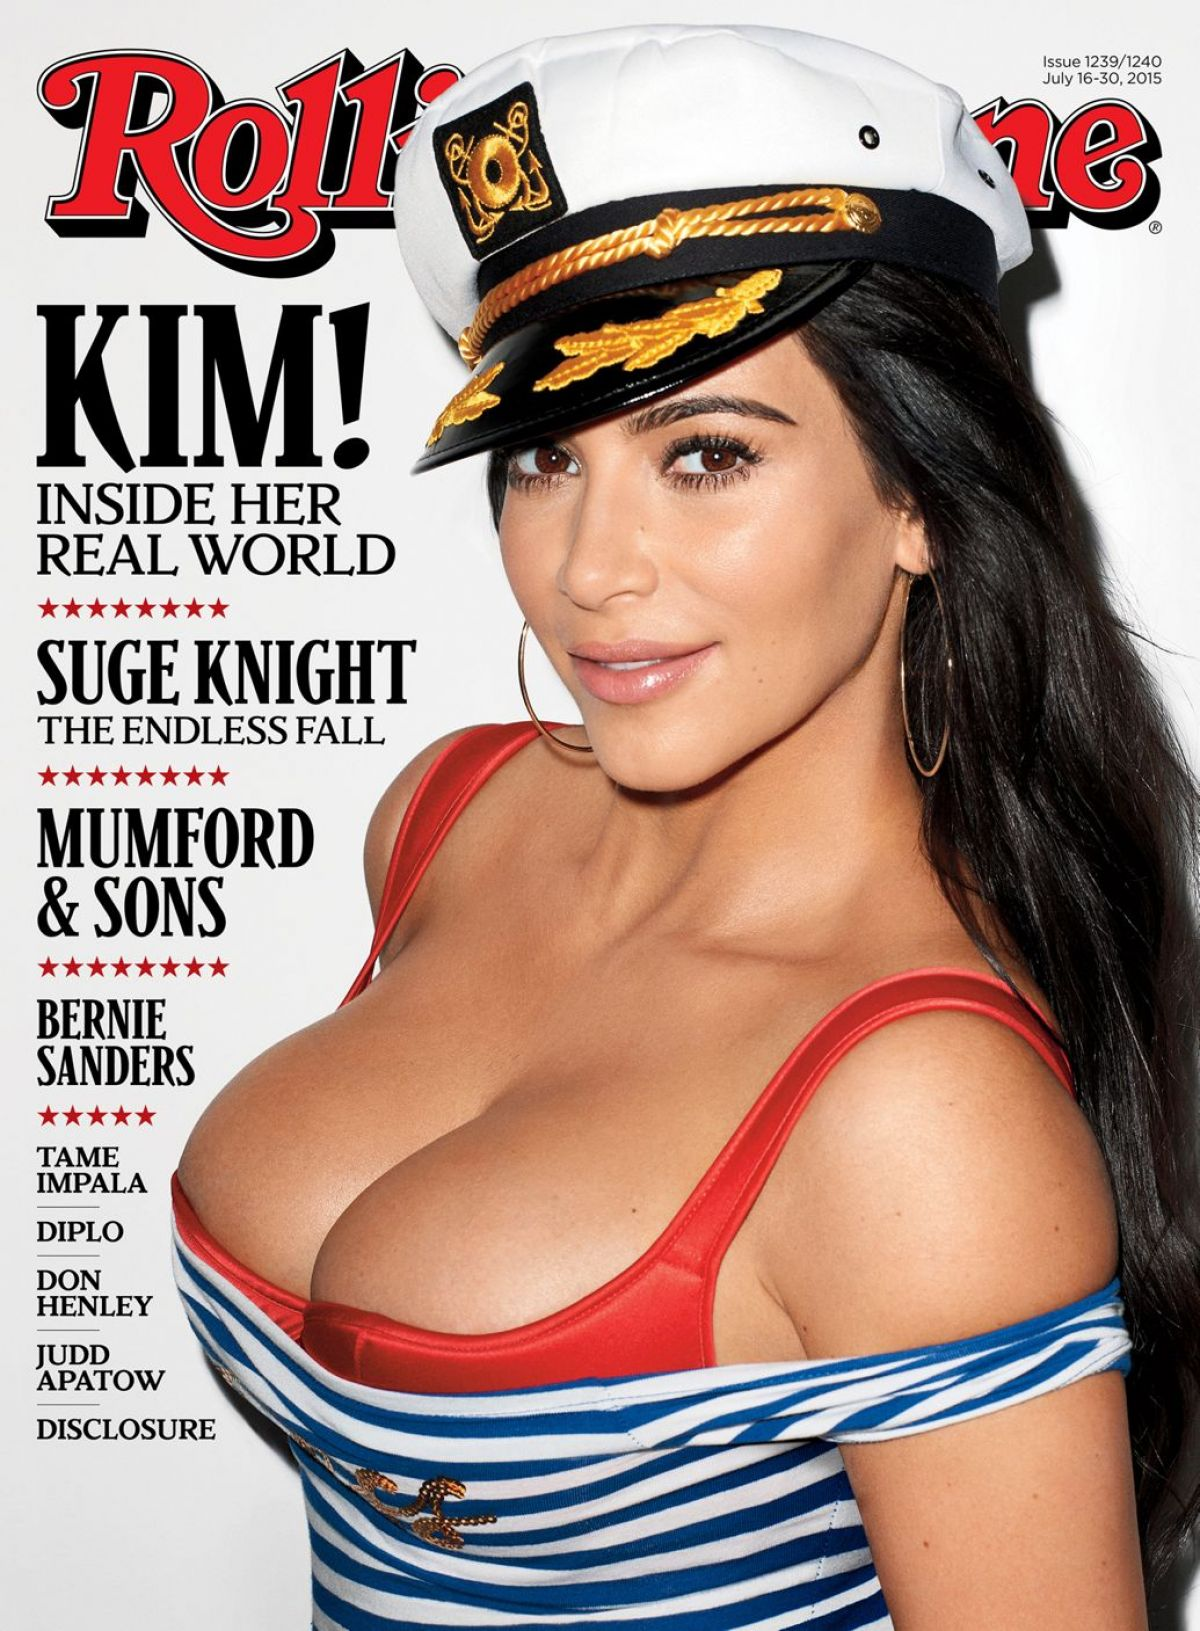 KIM KARDASHIAN on the Cover of Rolling Stone Magazine, July 2015 Issue